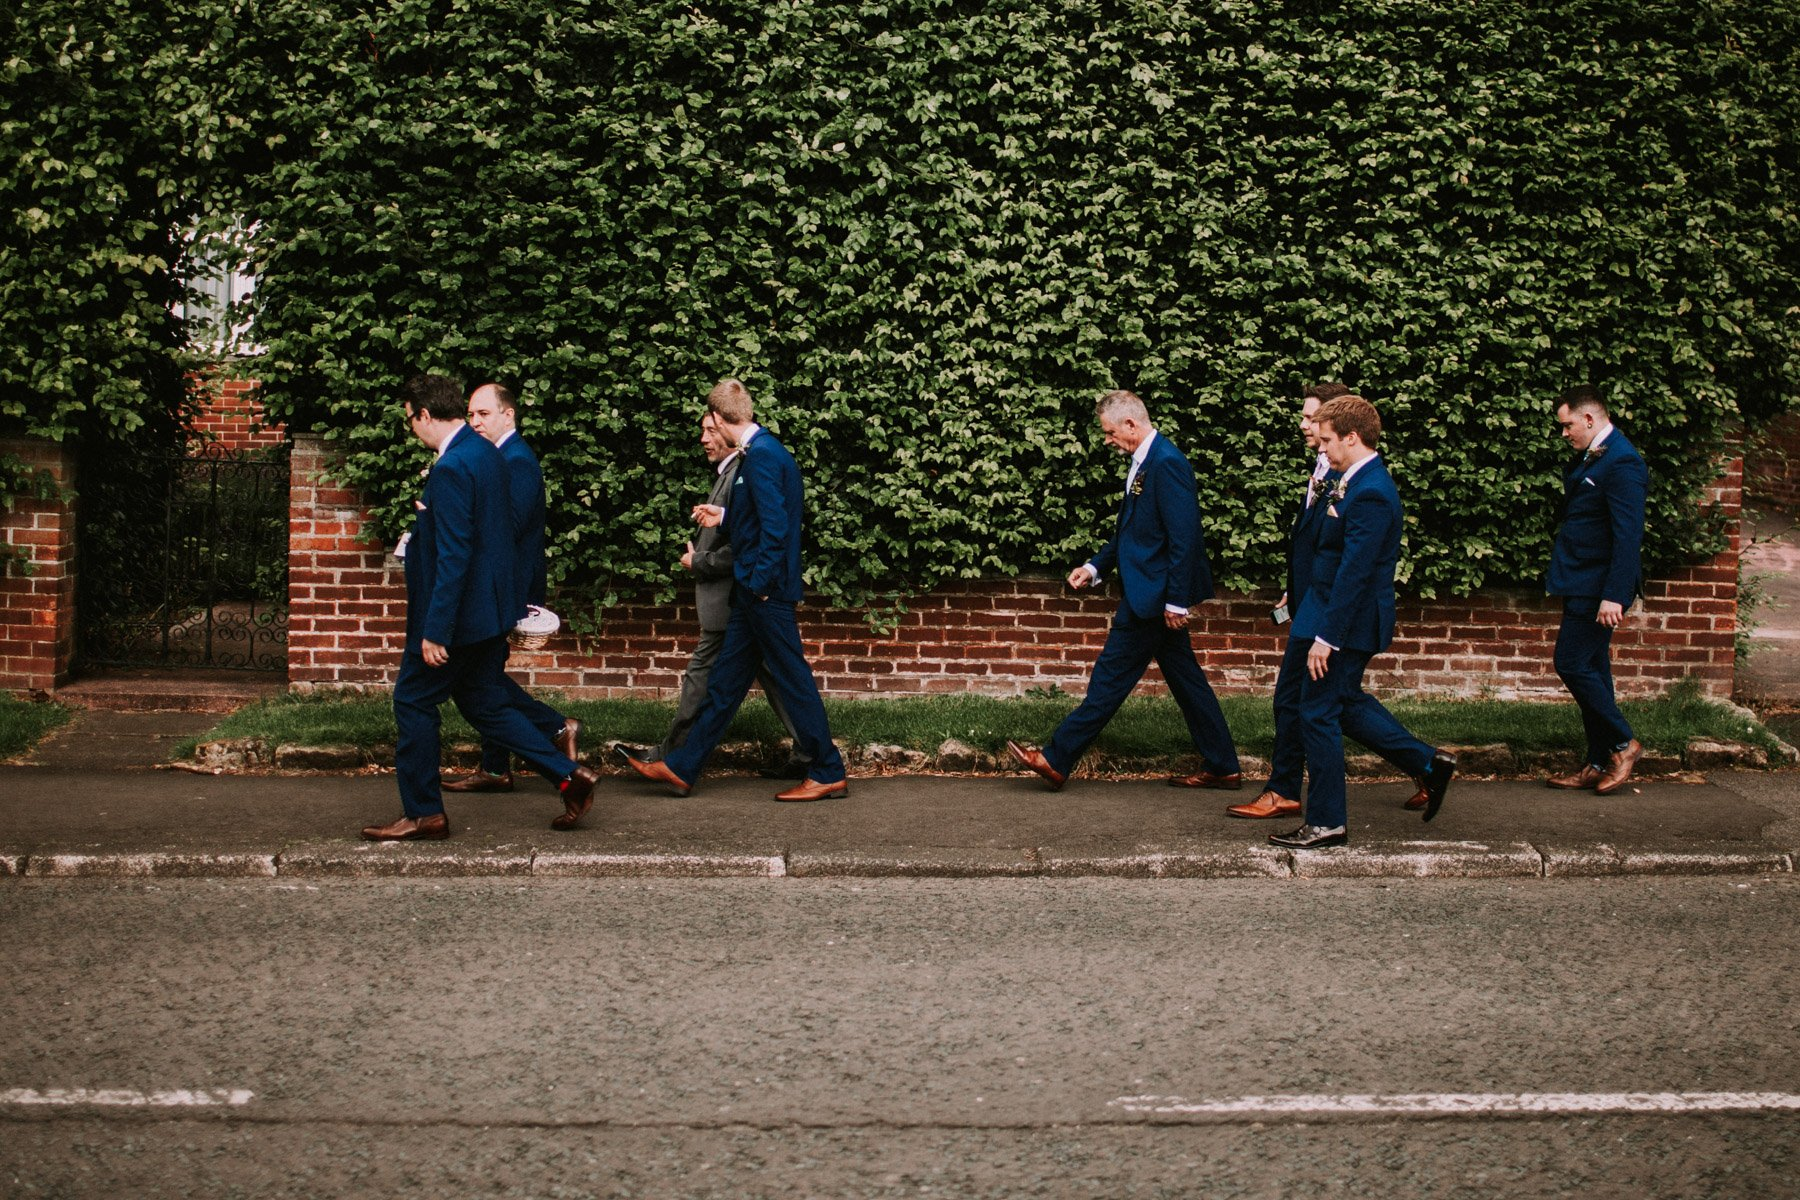 Summerhill bowling club wedding - groom and groomsmen walk down to the church